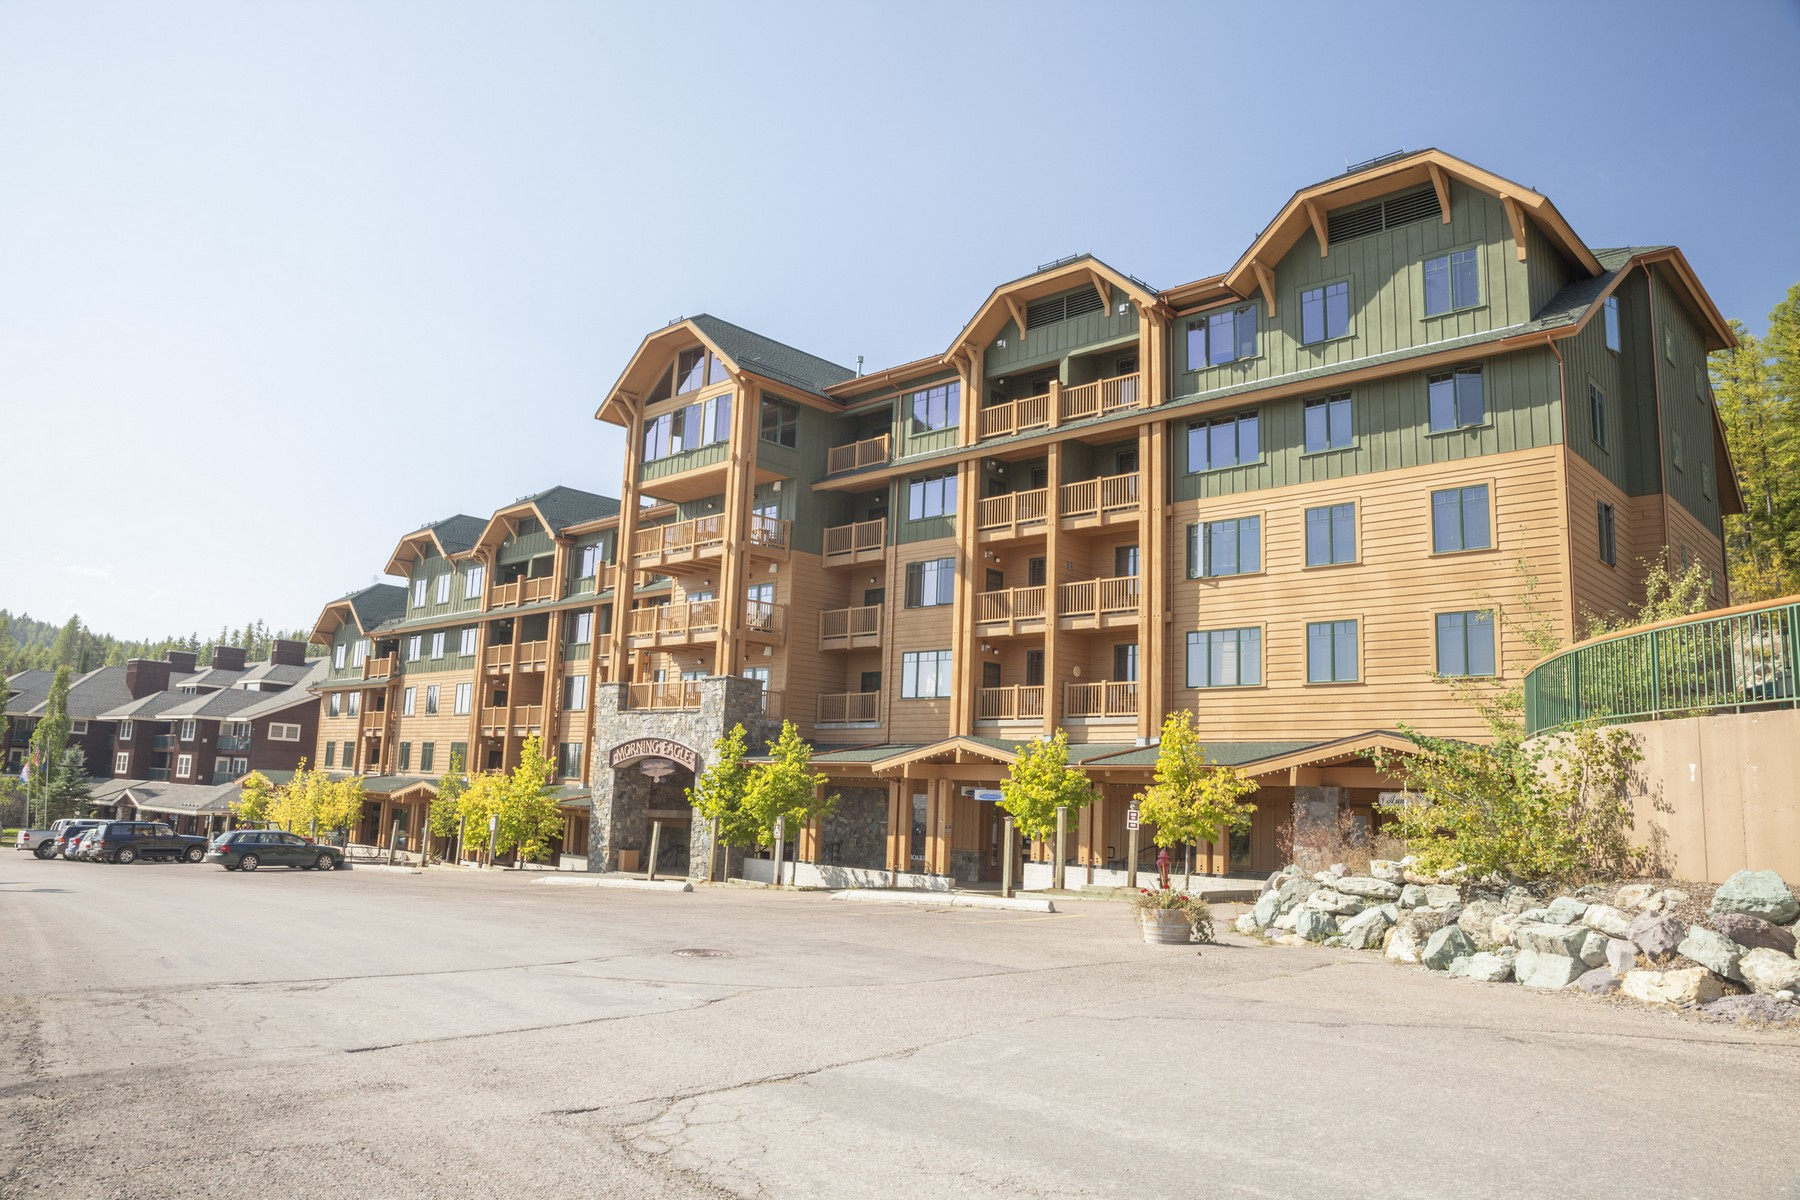 sales property at 3893 Big Mountain Road, Unit 111, Whitefish, MT 59